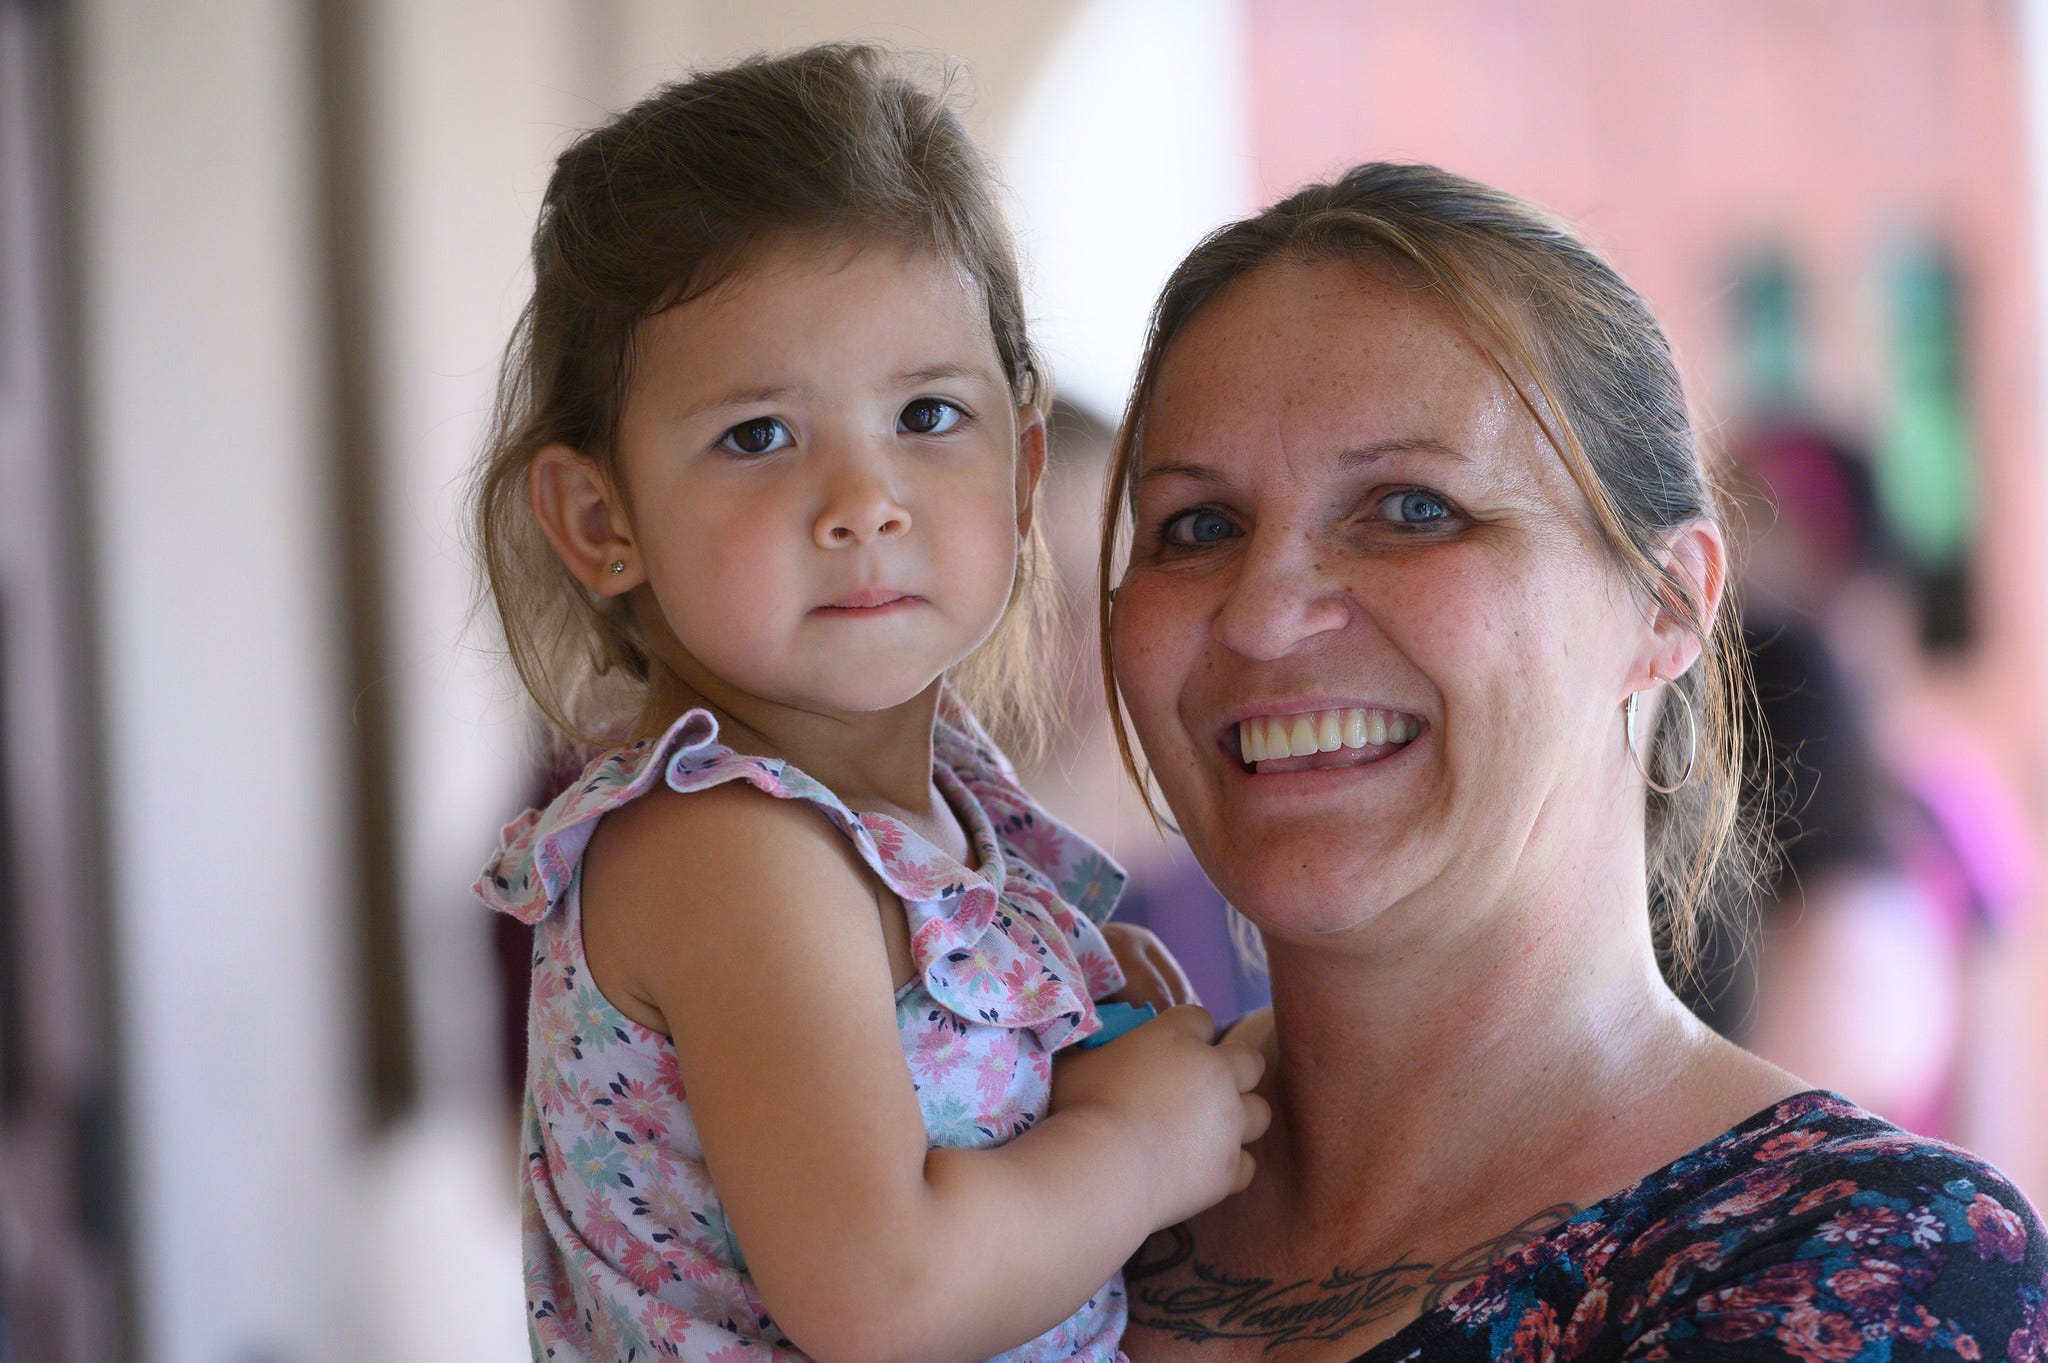 Rebecca Legate with her 3-year-old daughter Nati.